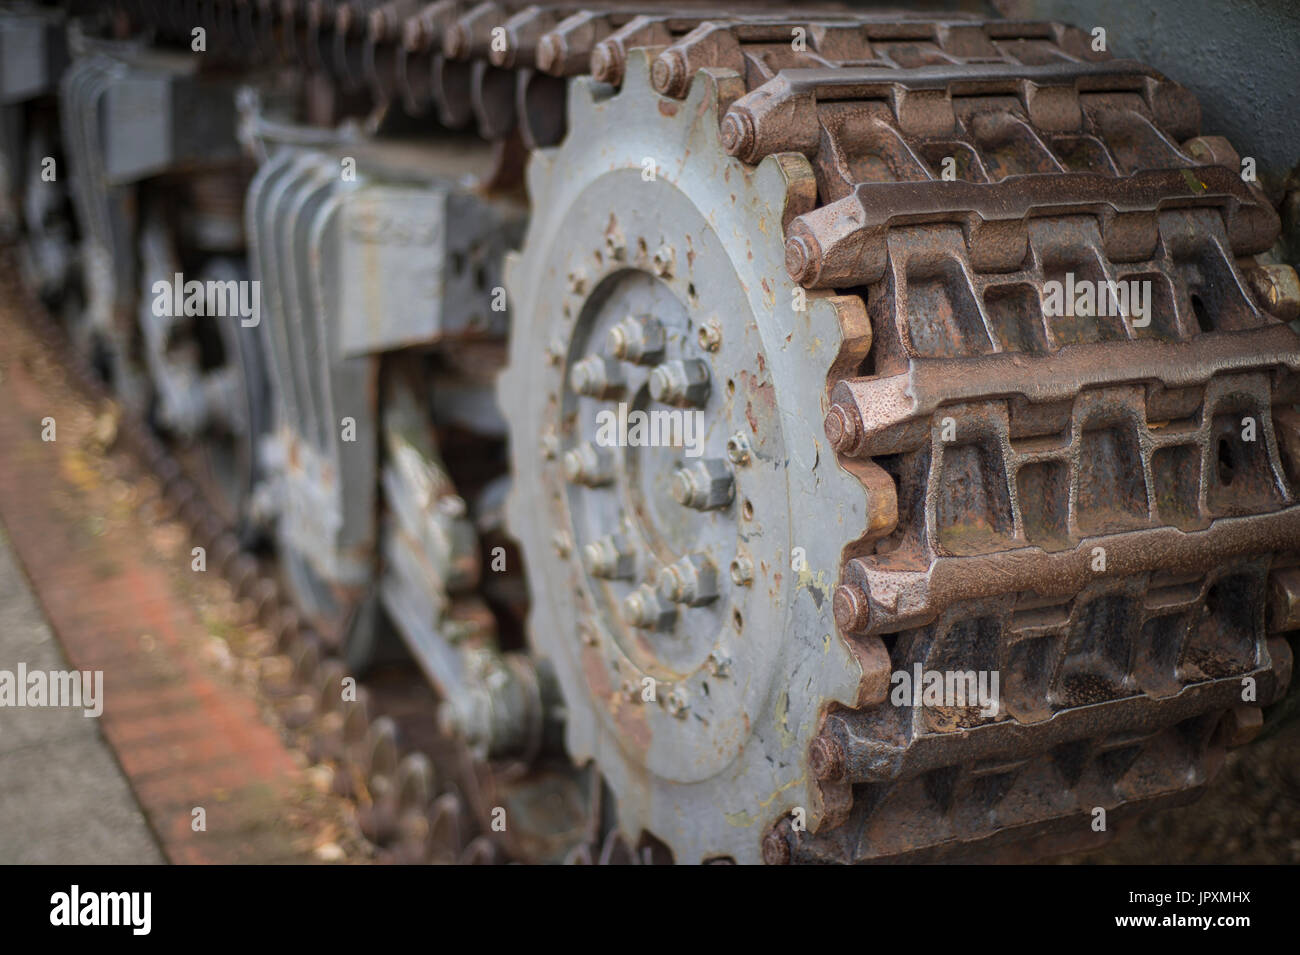 closeup of of a tank tracks and drive mechanism - Stock Image